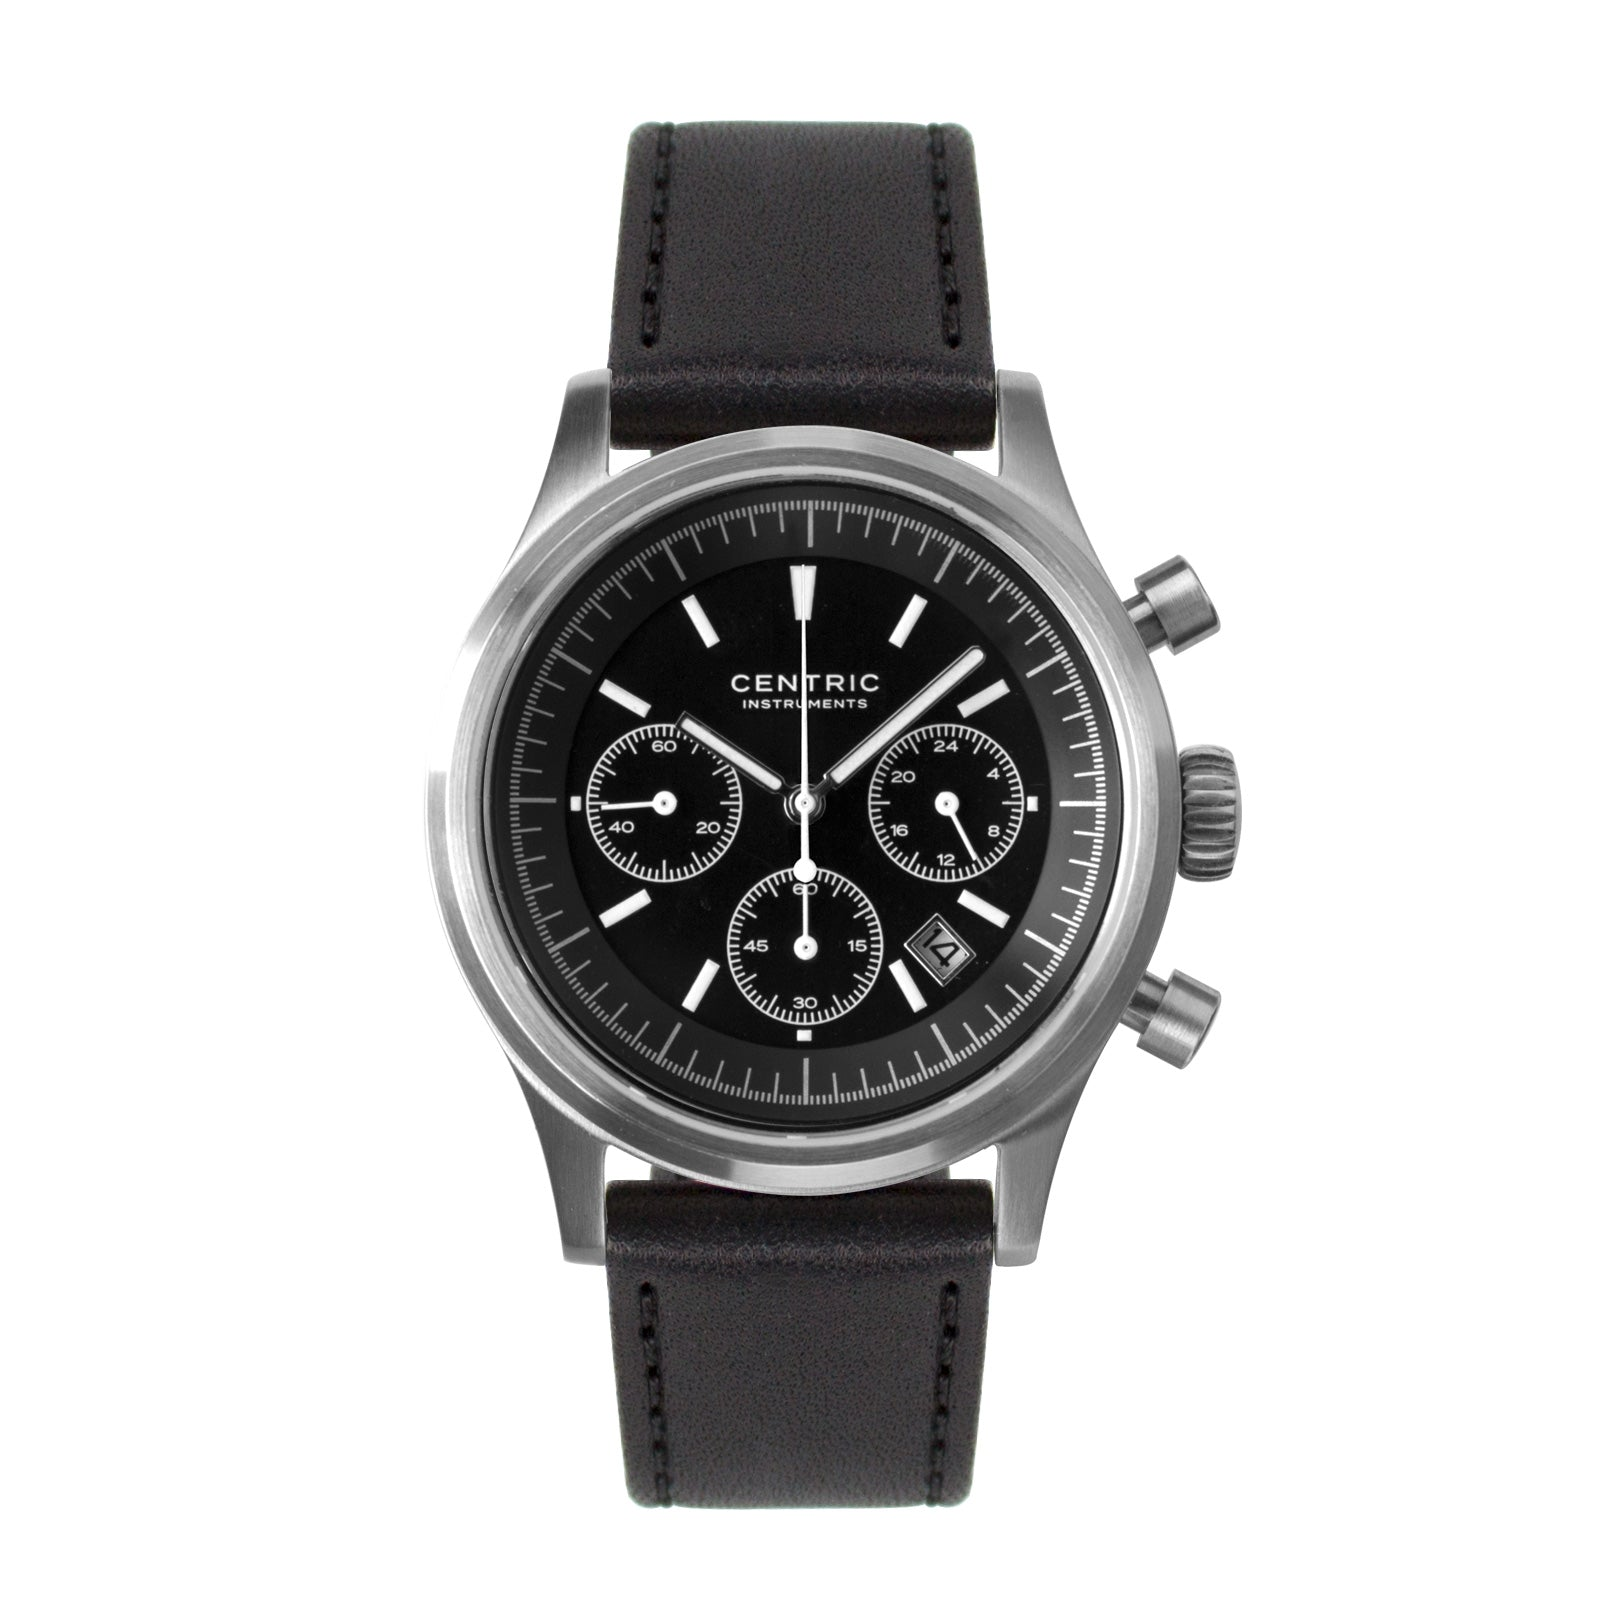 Pilot Chronograph Modern (Black) - Classic Leather